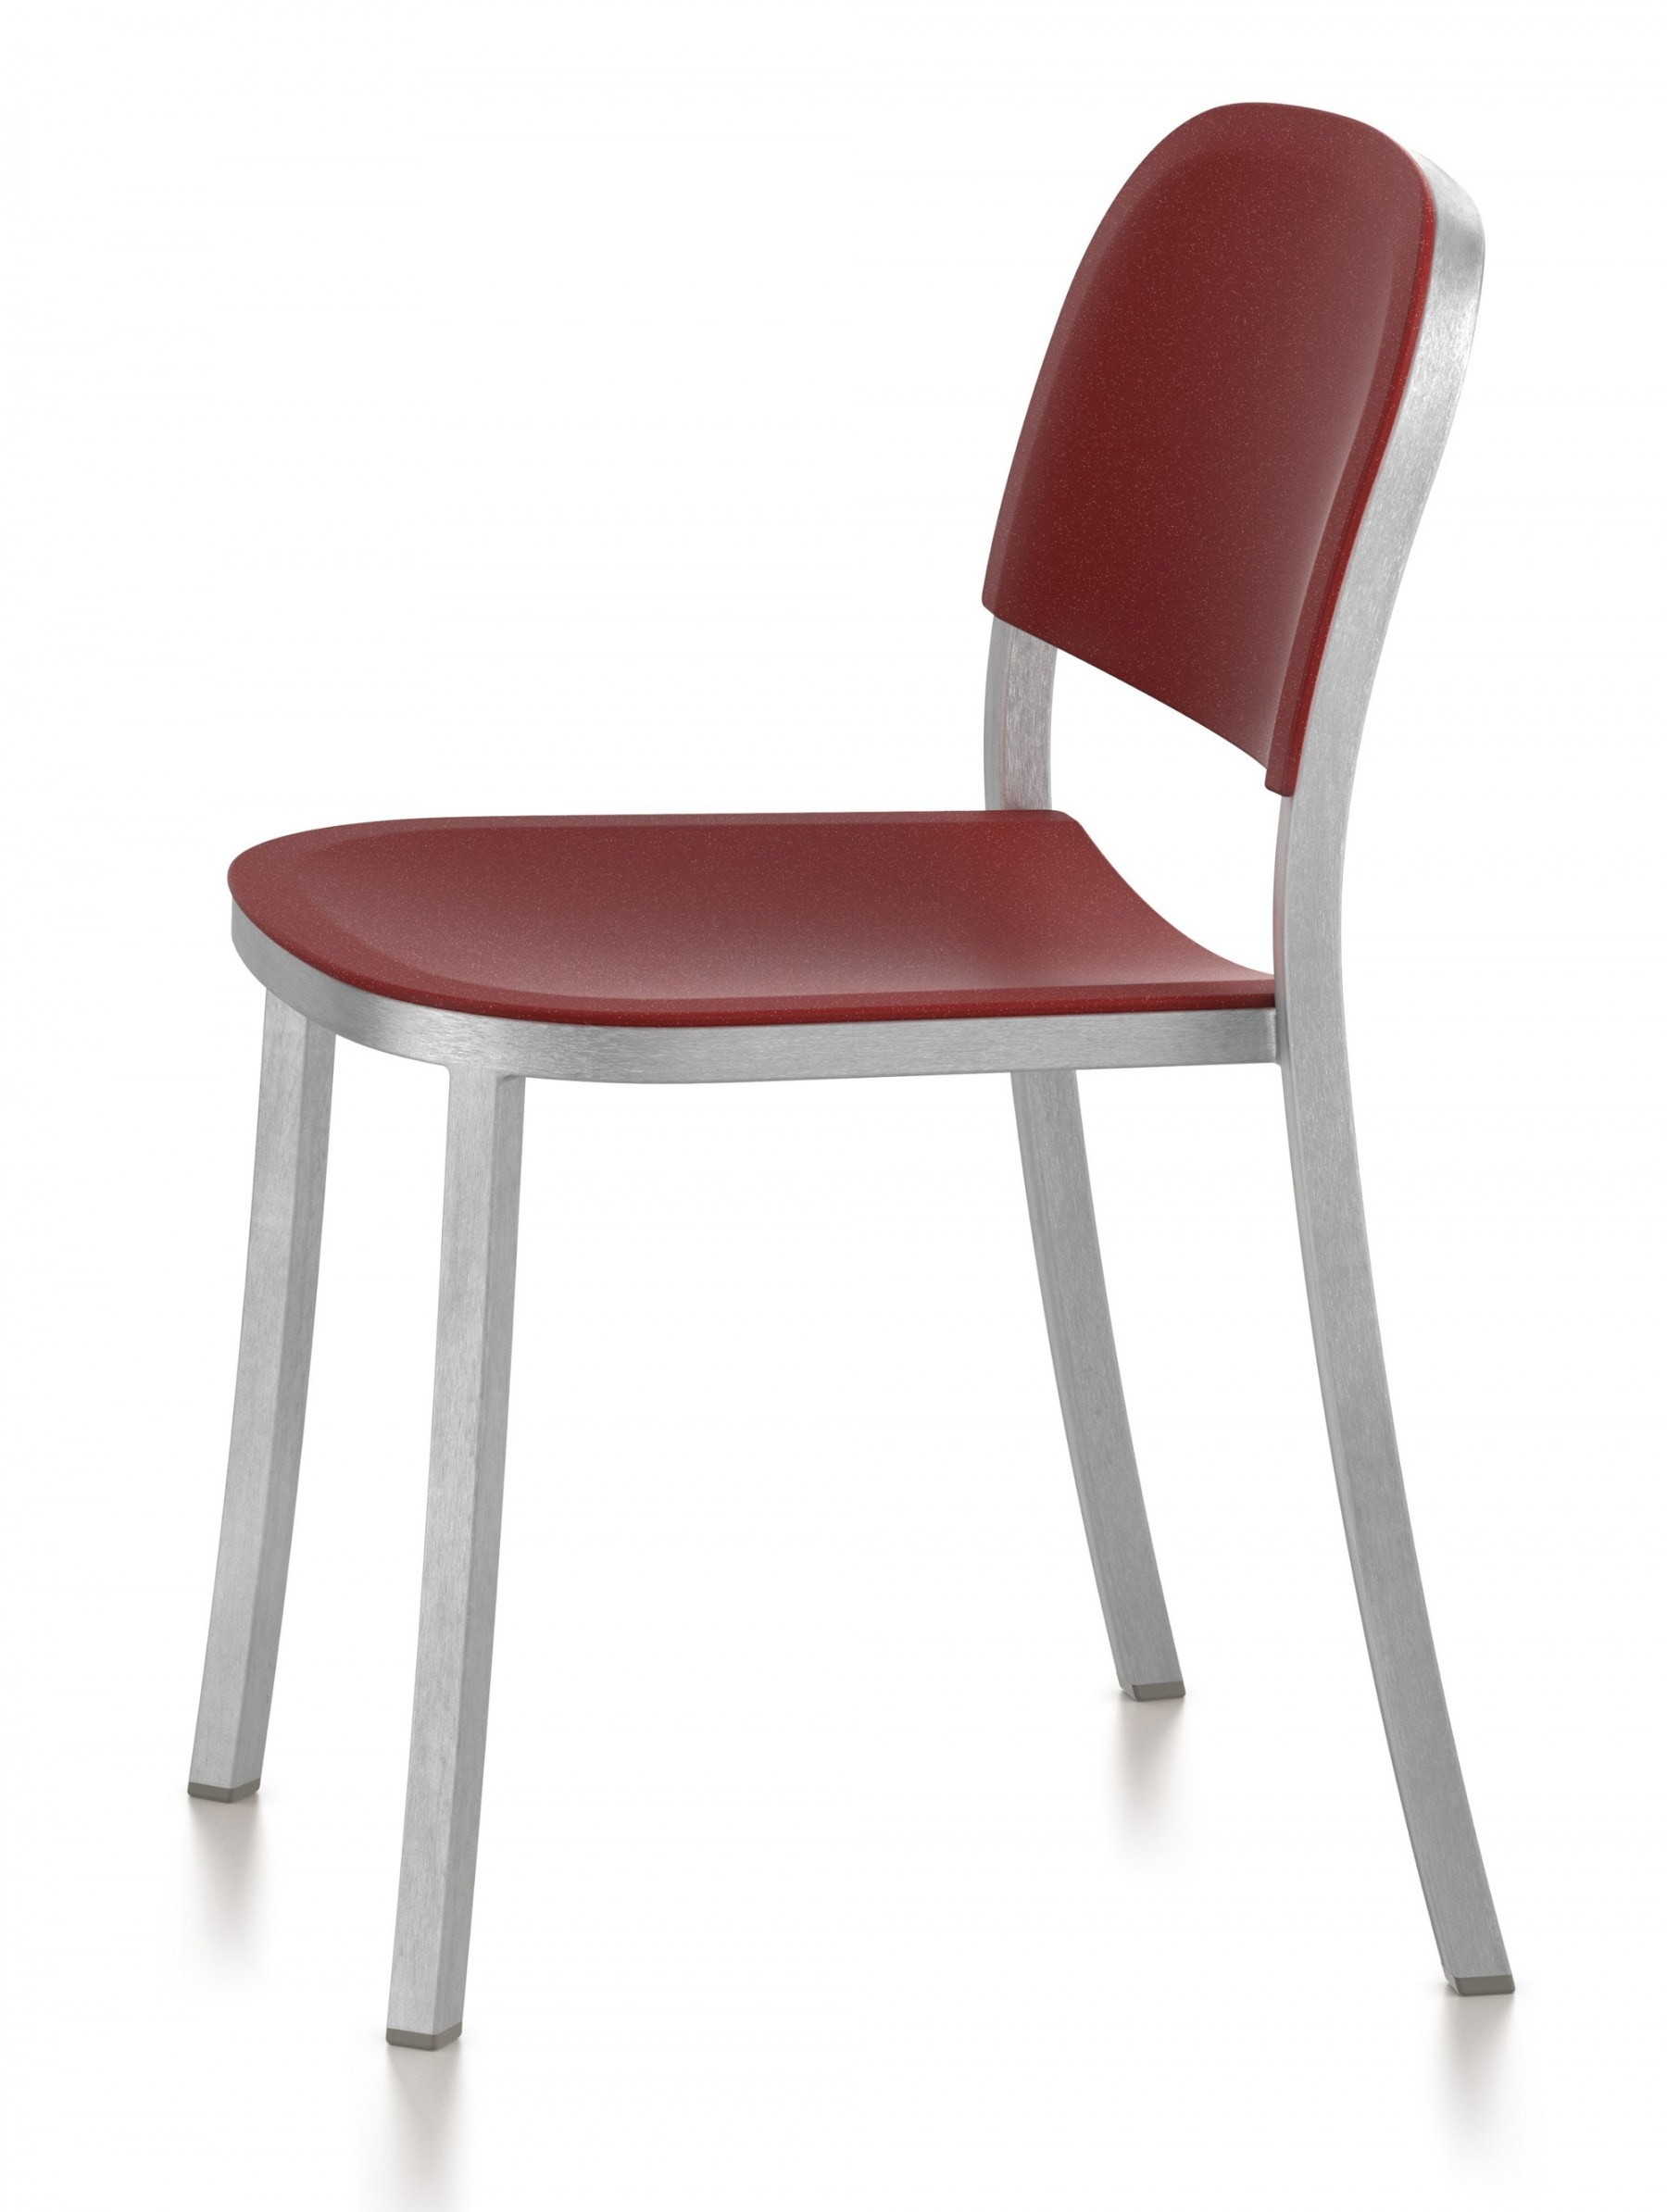 Emeco 1 INCH Stacking Side Chair By Jasper Morrison Modern Planet